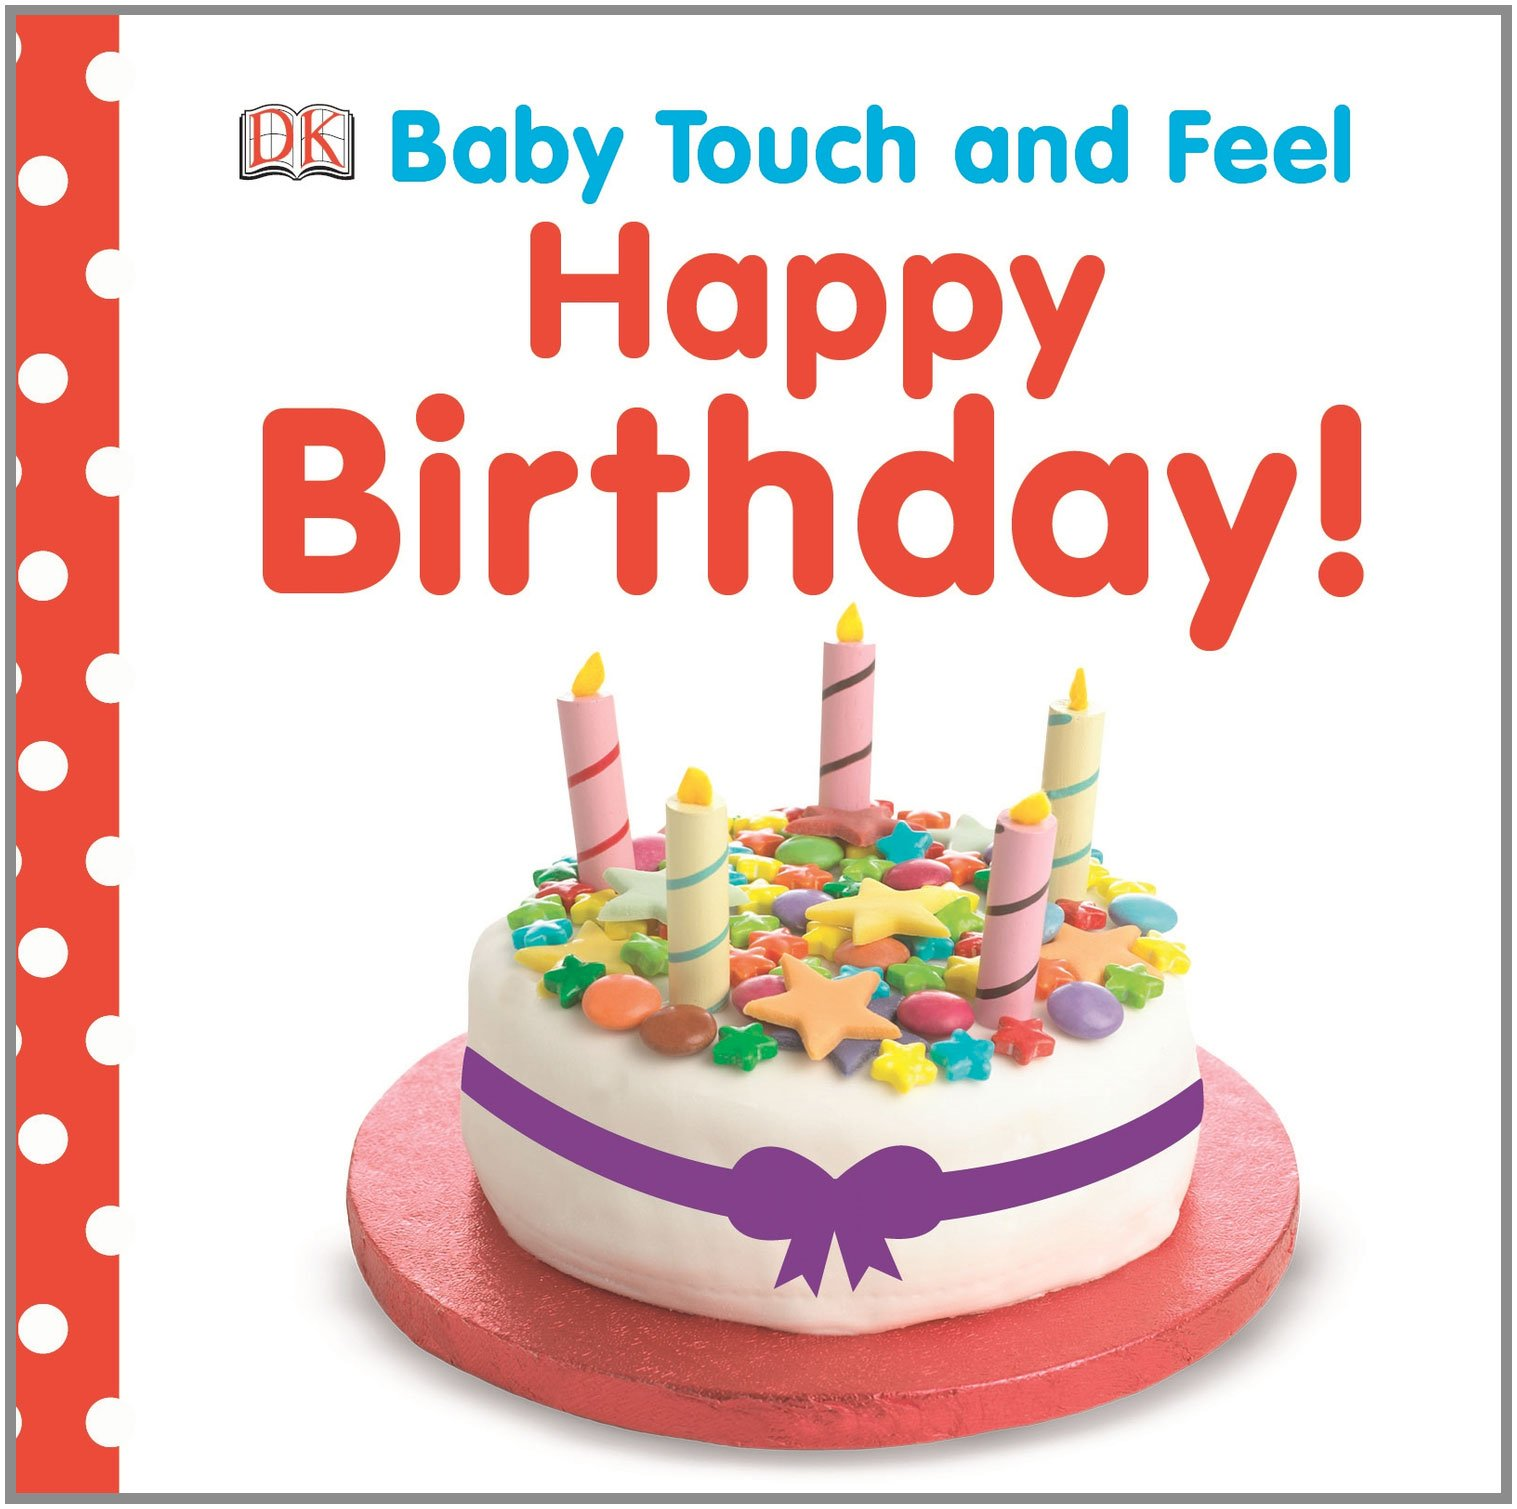 Amazon Baby Touch and Feel Happy Birthday Baby Touch & Feel